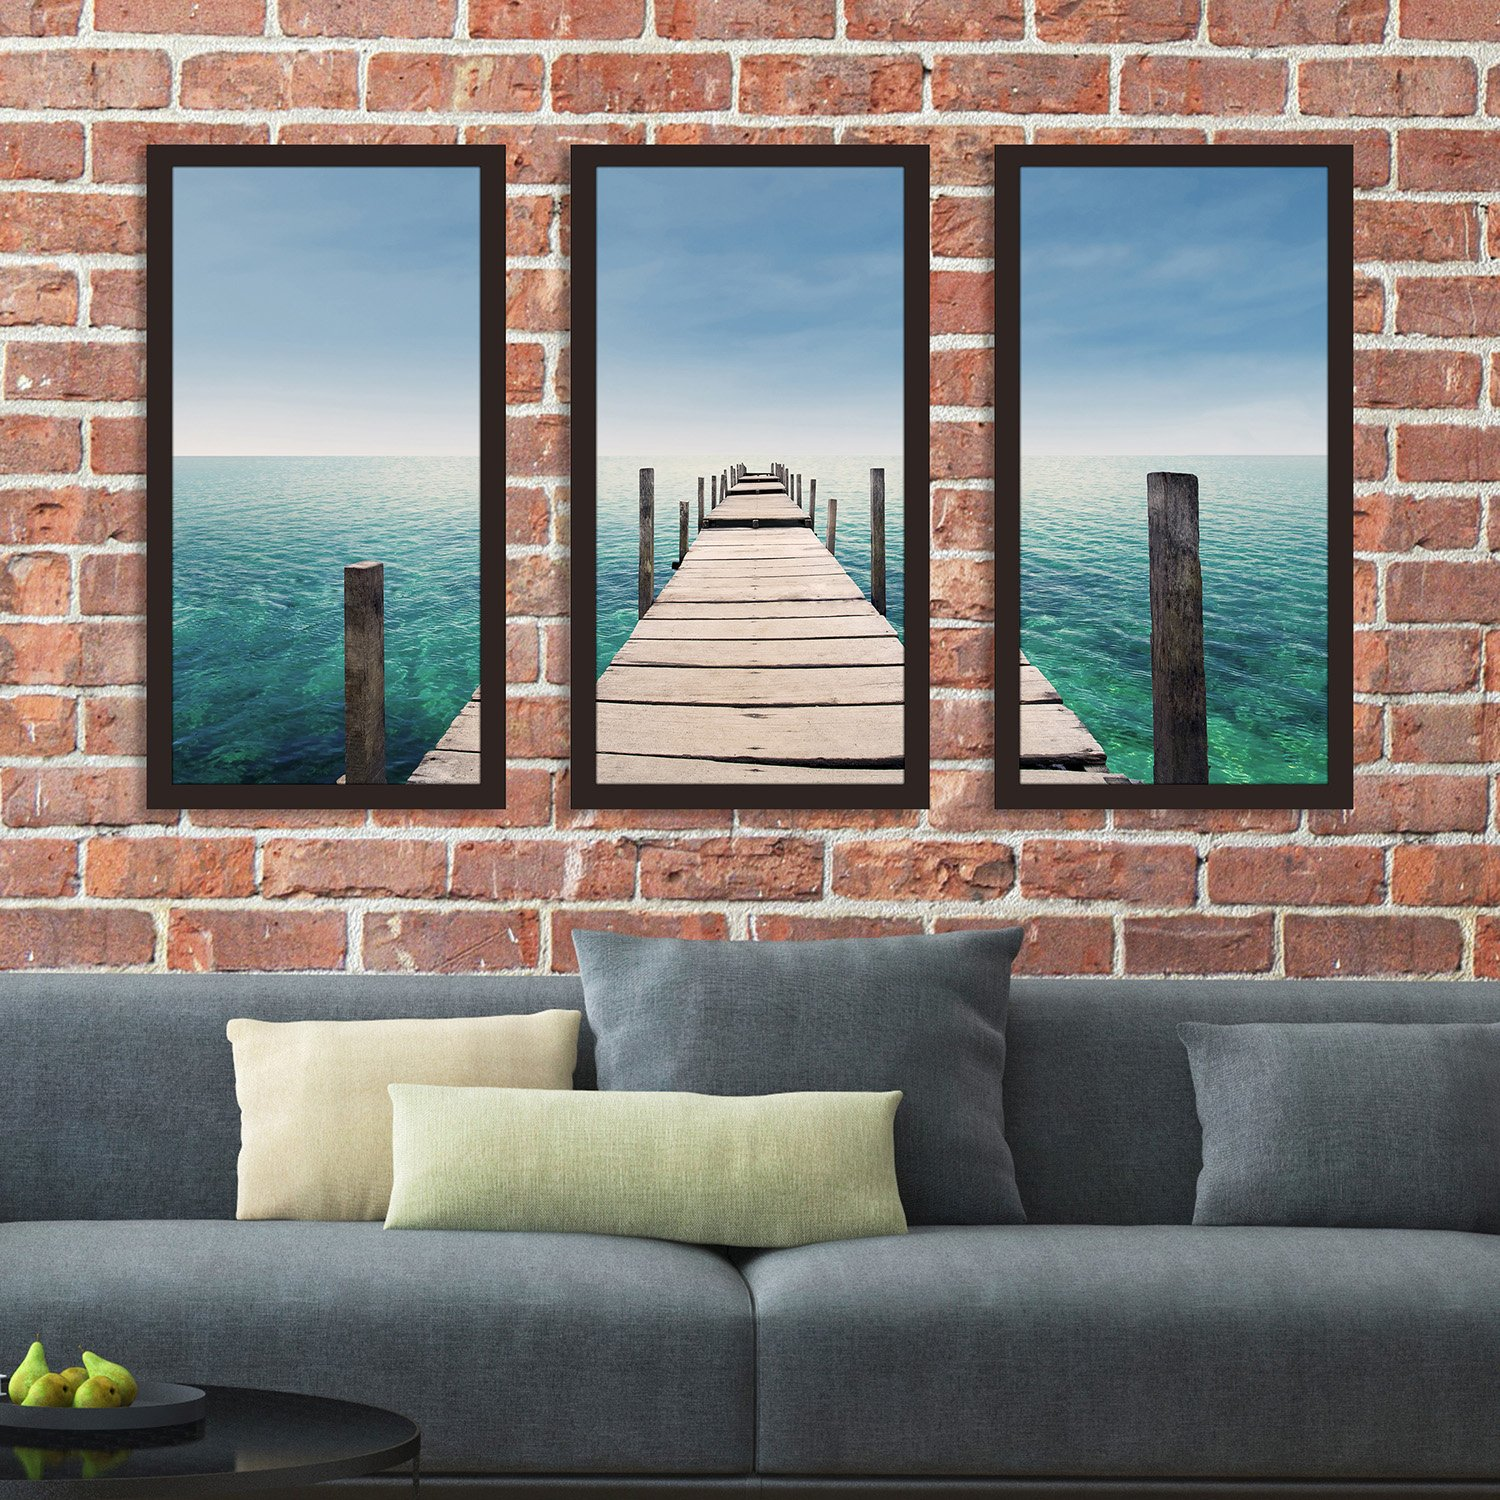 Picture Perfect Internationalby The Dock Framed Plexiglass Wall Art Set of 3